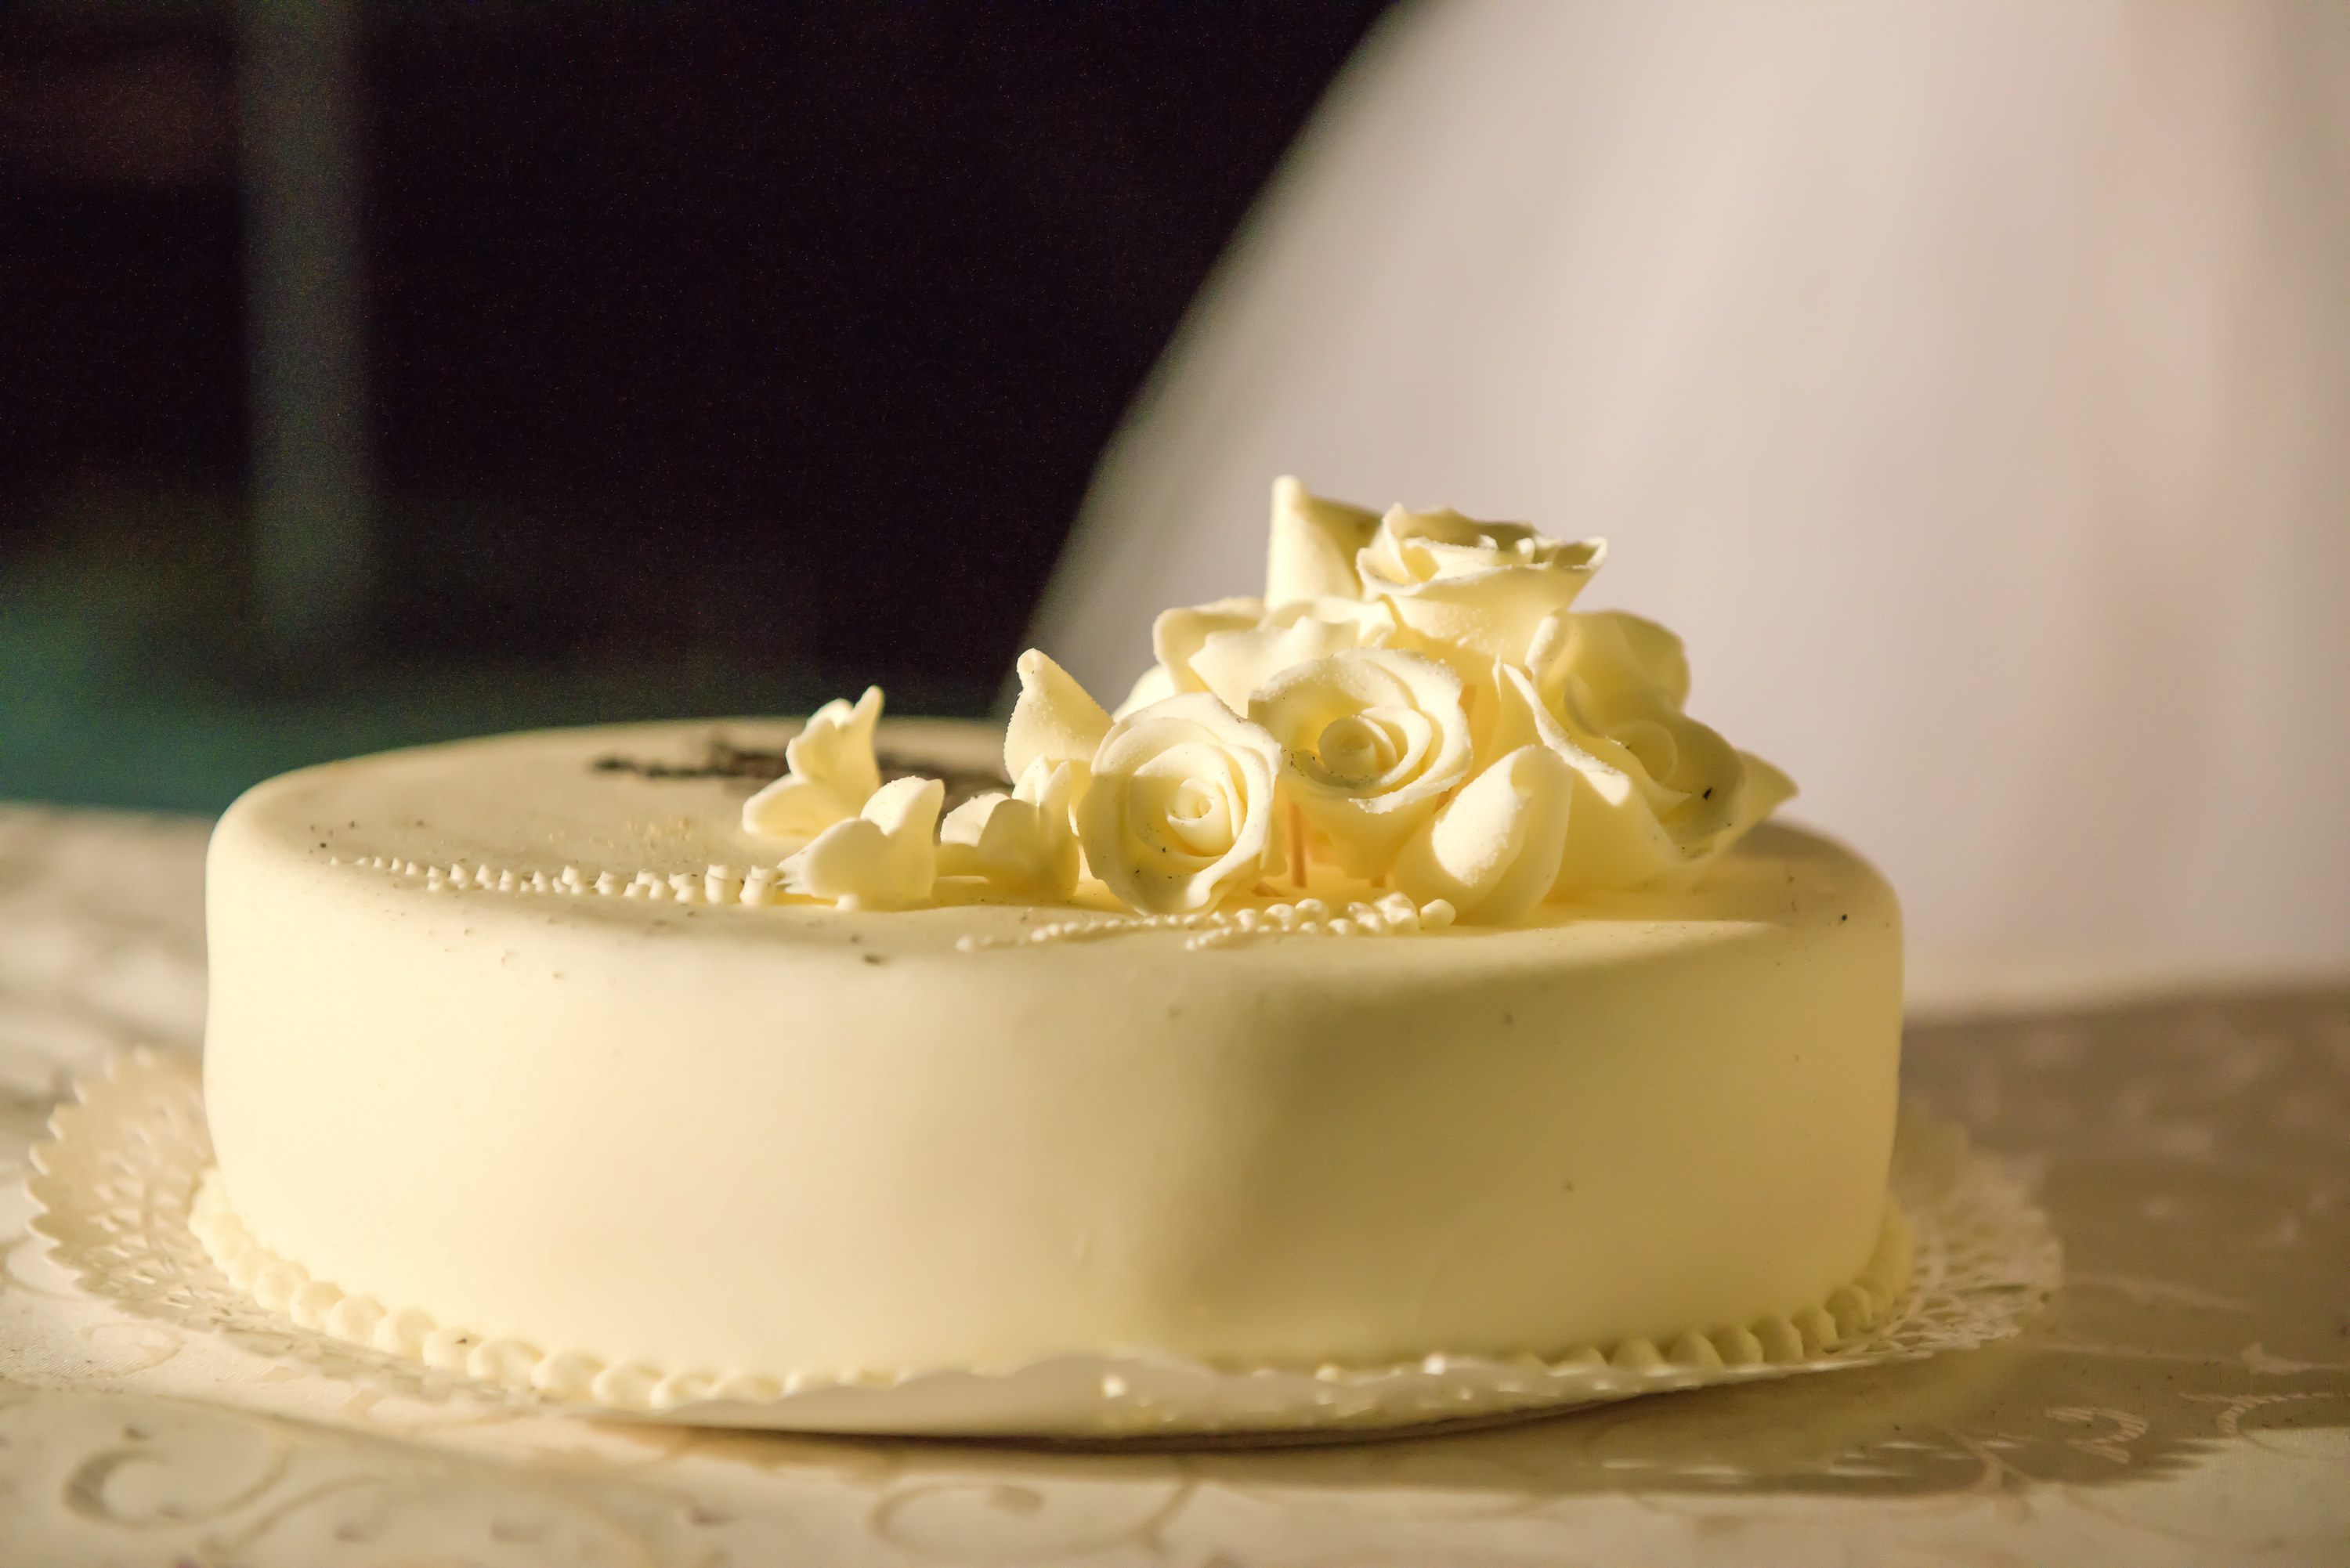 A one-tier wedding cake with icing roses